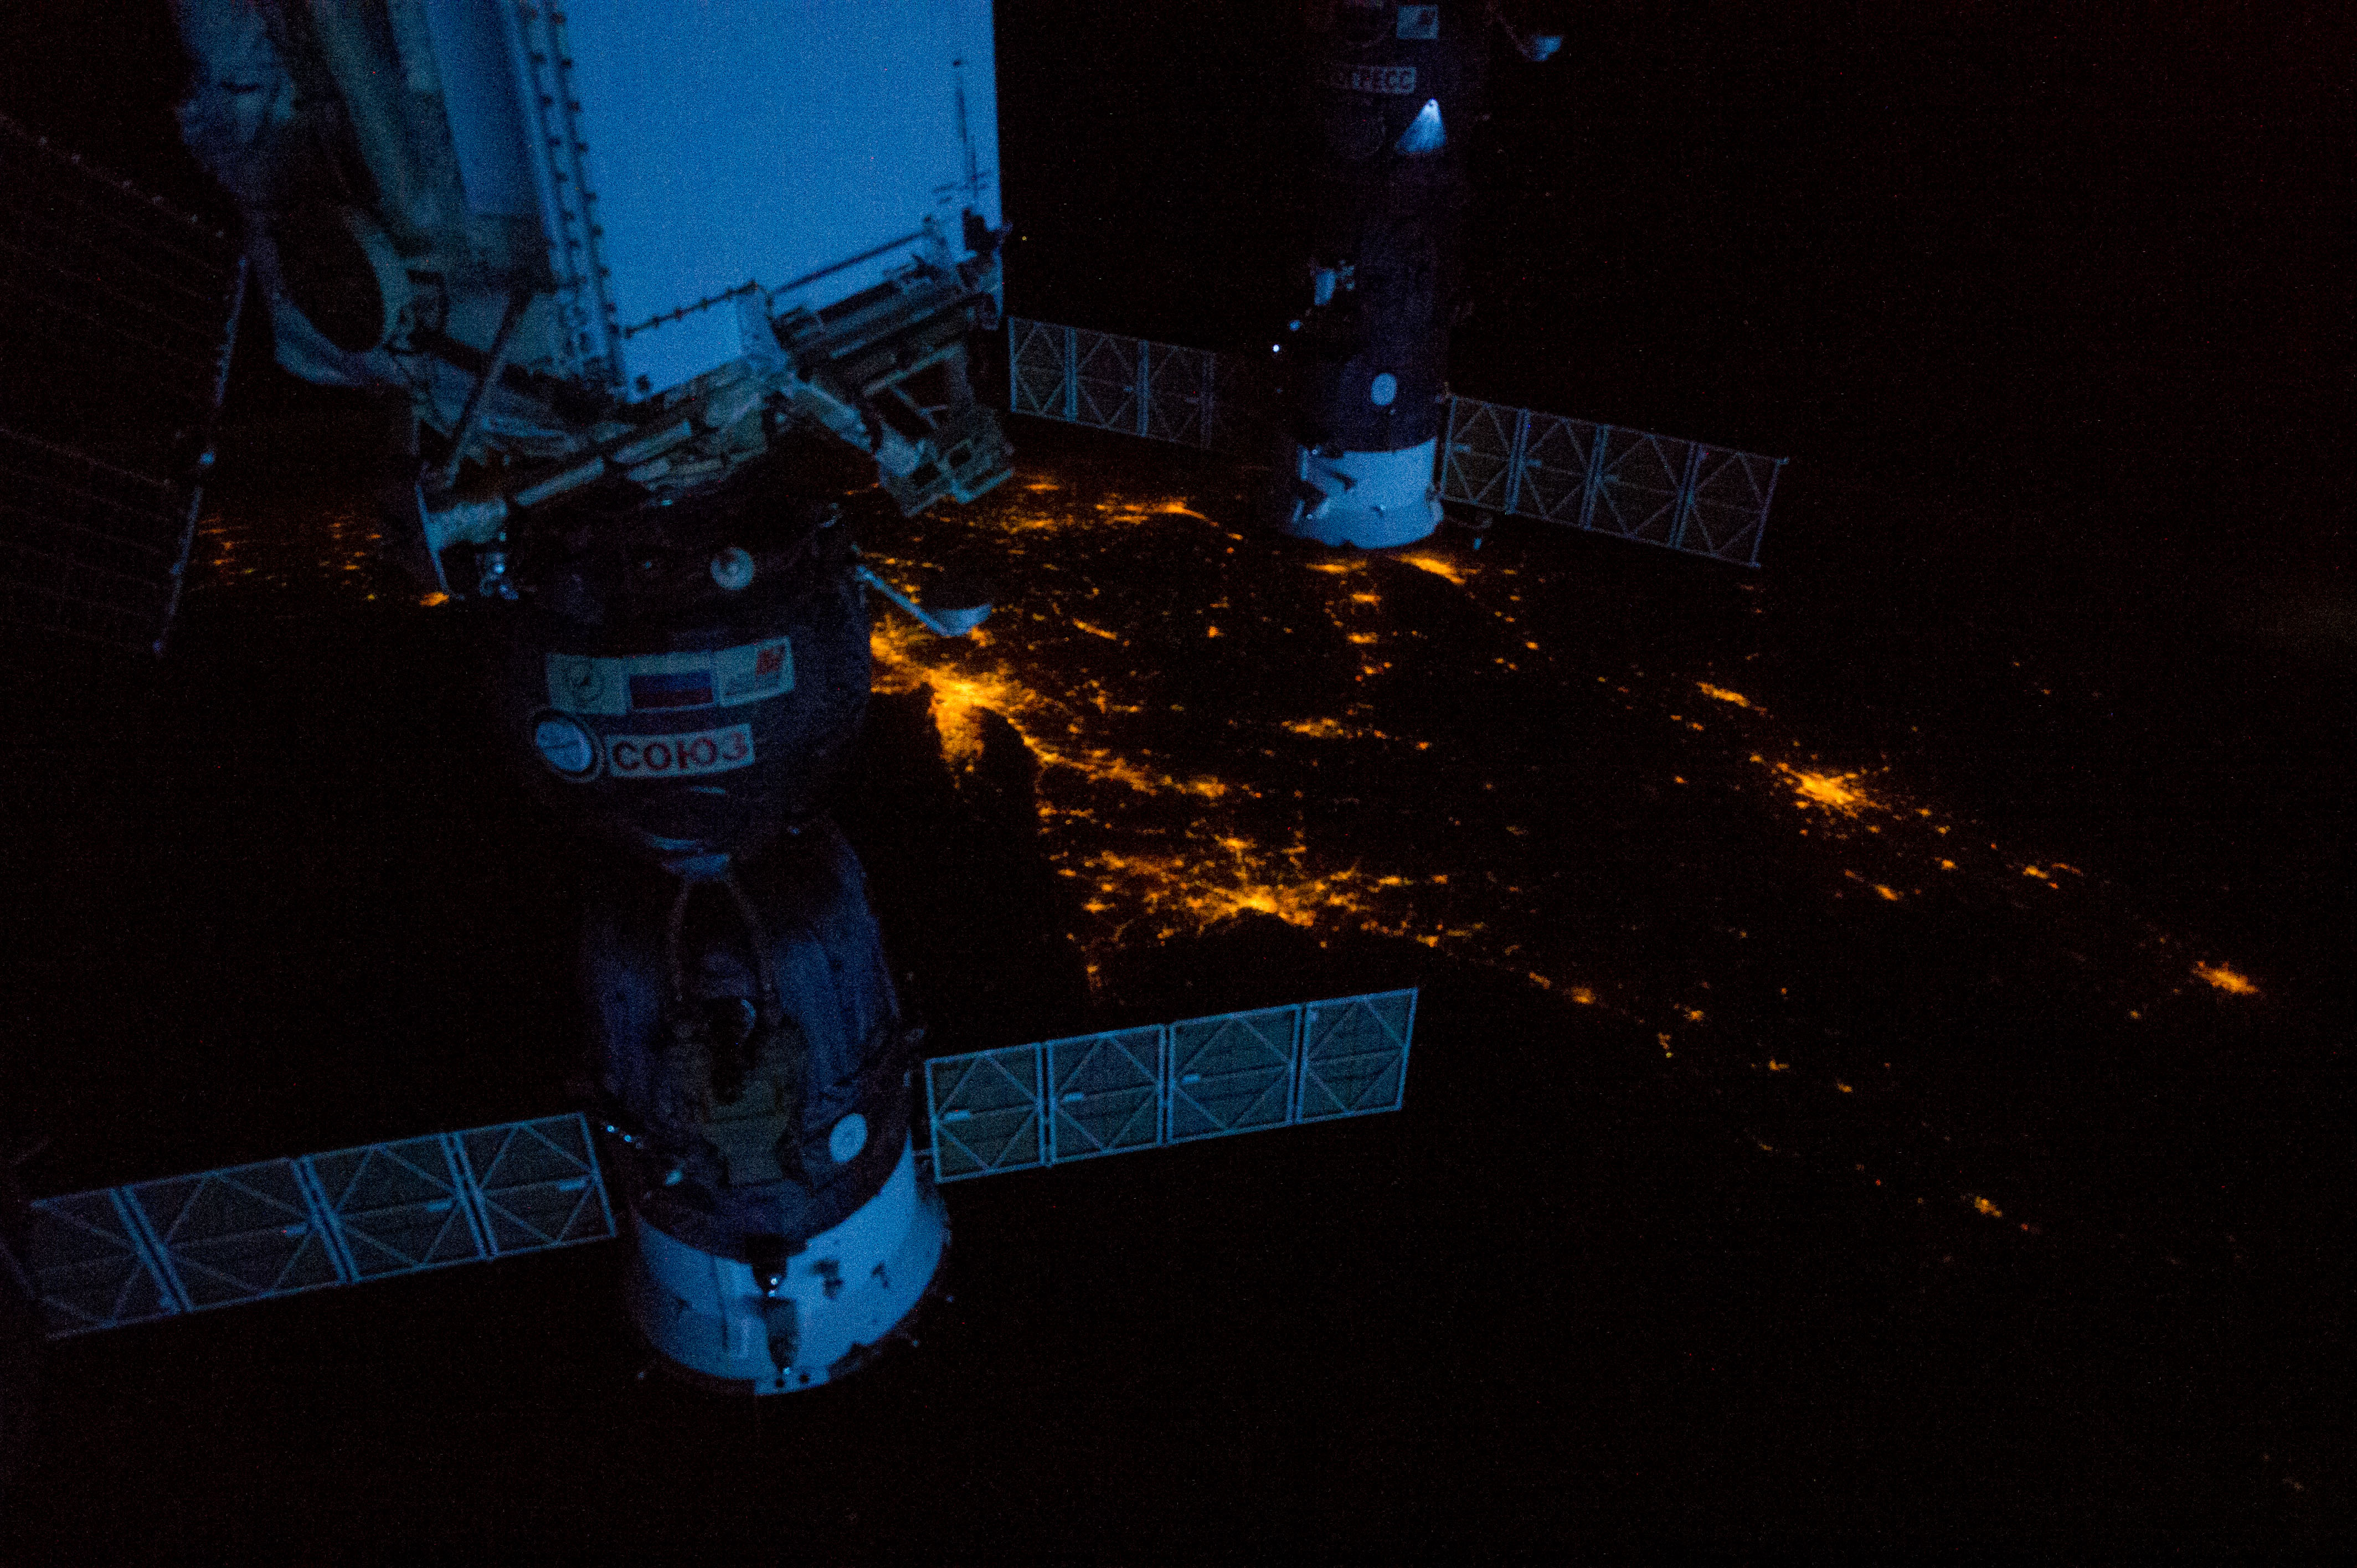 Soyuz 35 at night